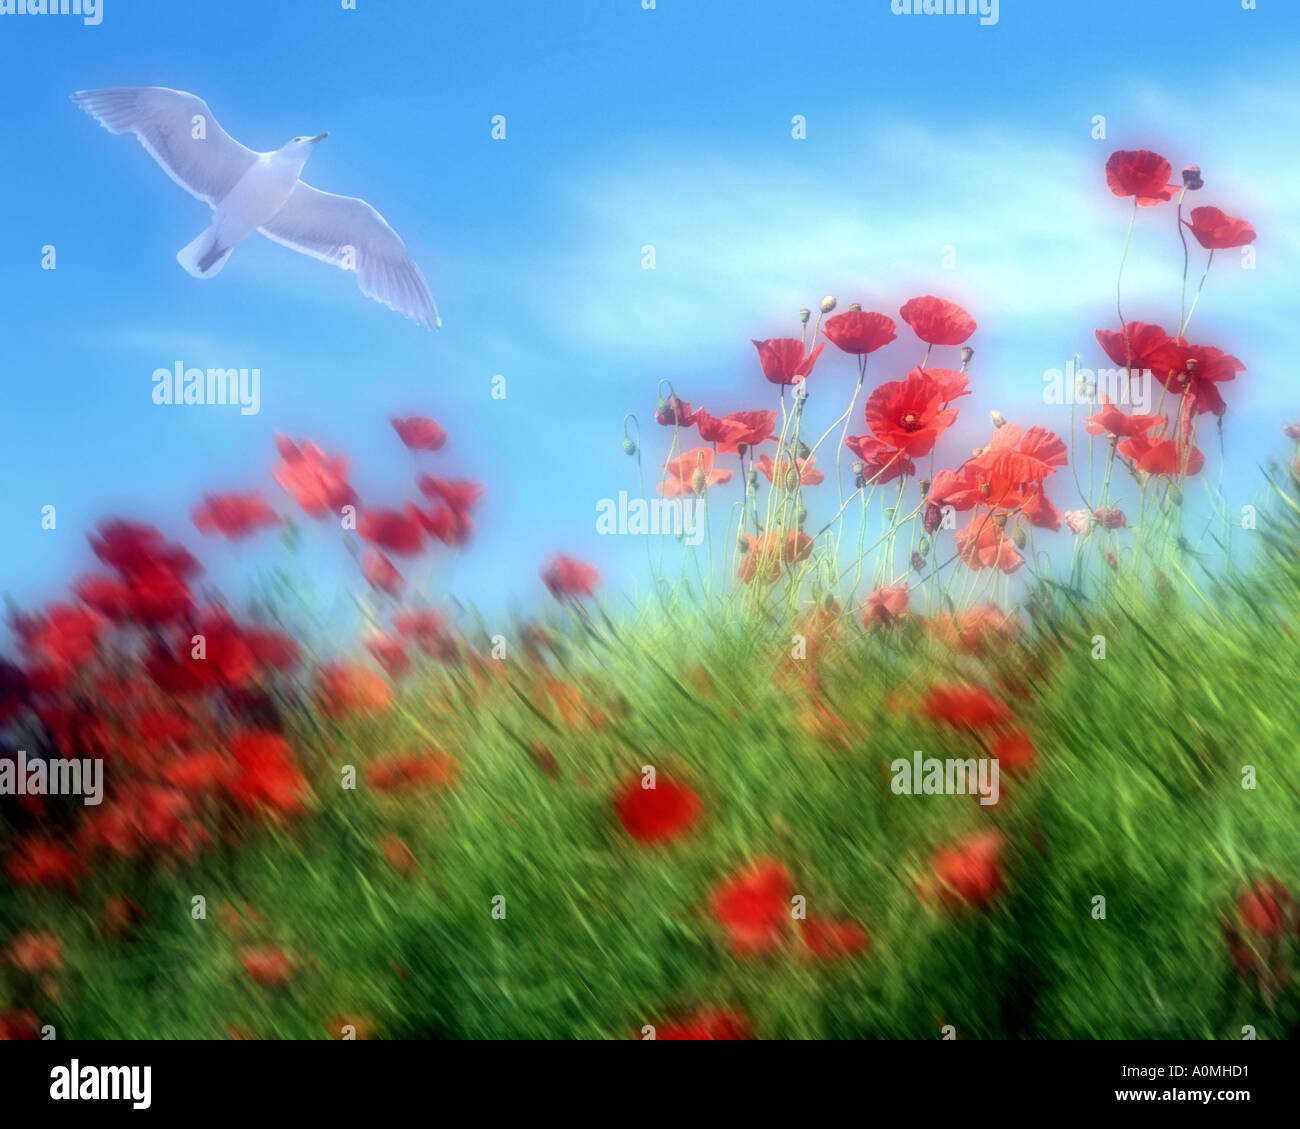 FLORA: Red Poppies - Stock Image